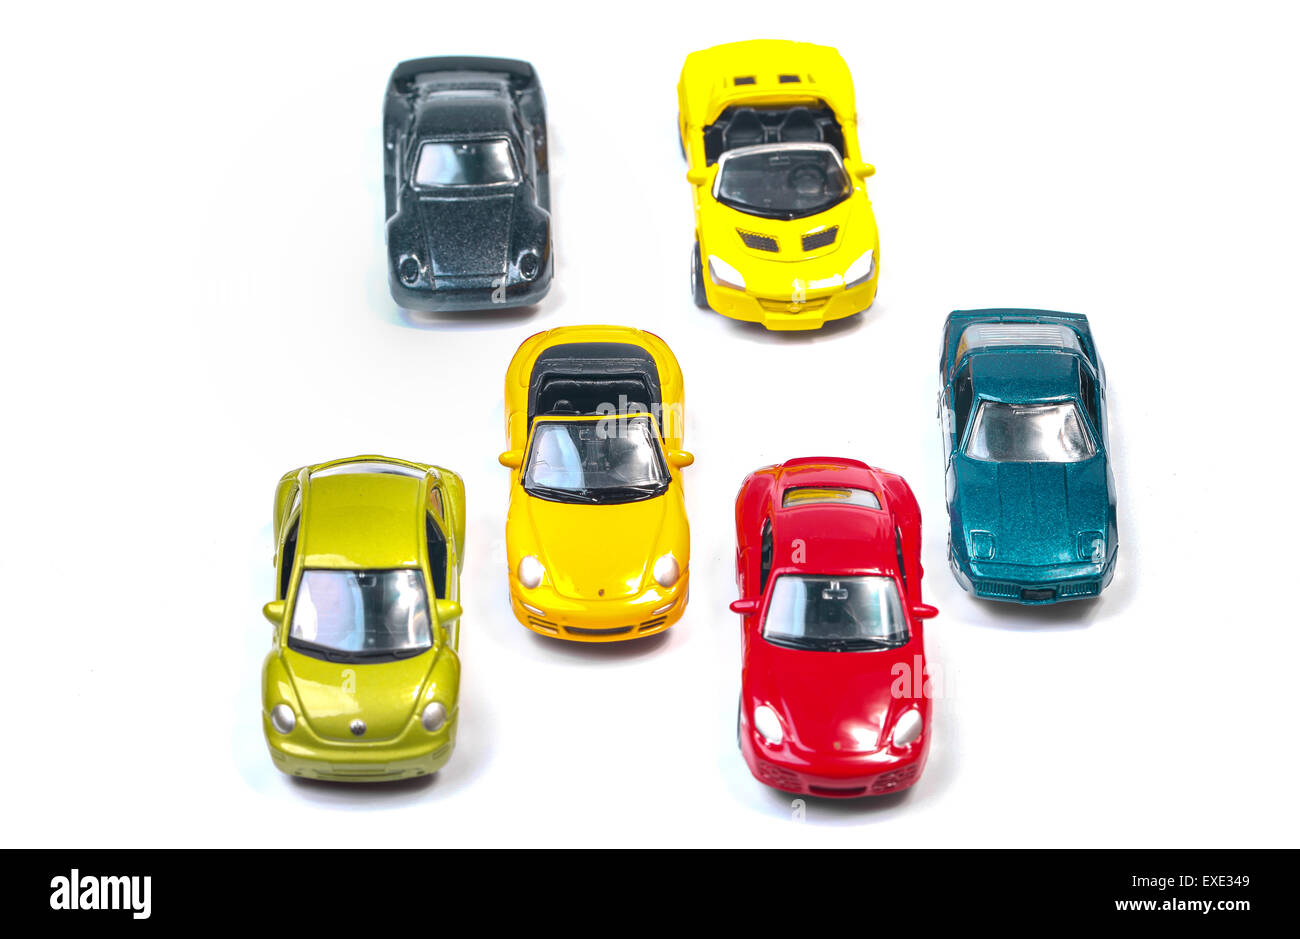 High angle view on colorful toy cars - Stock Image